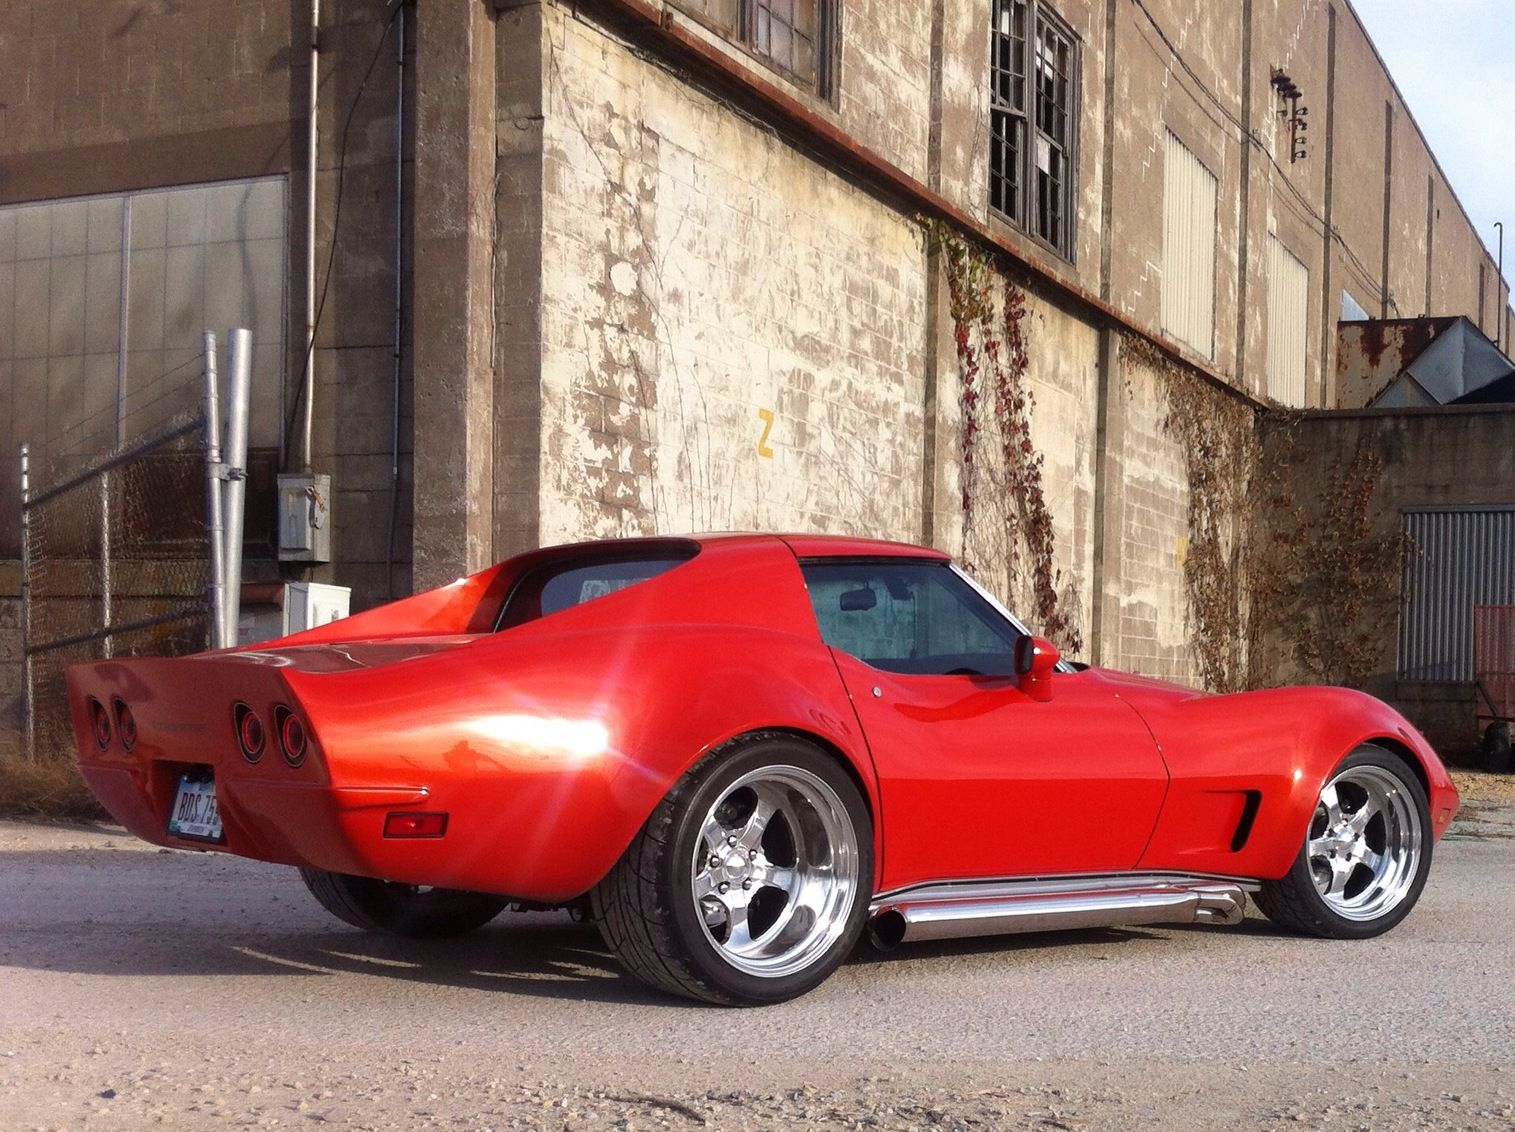 76 corvette stingray with rear end conversion flares and paint by custom image corvettes